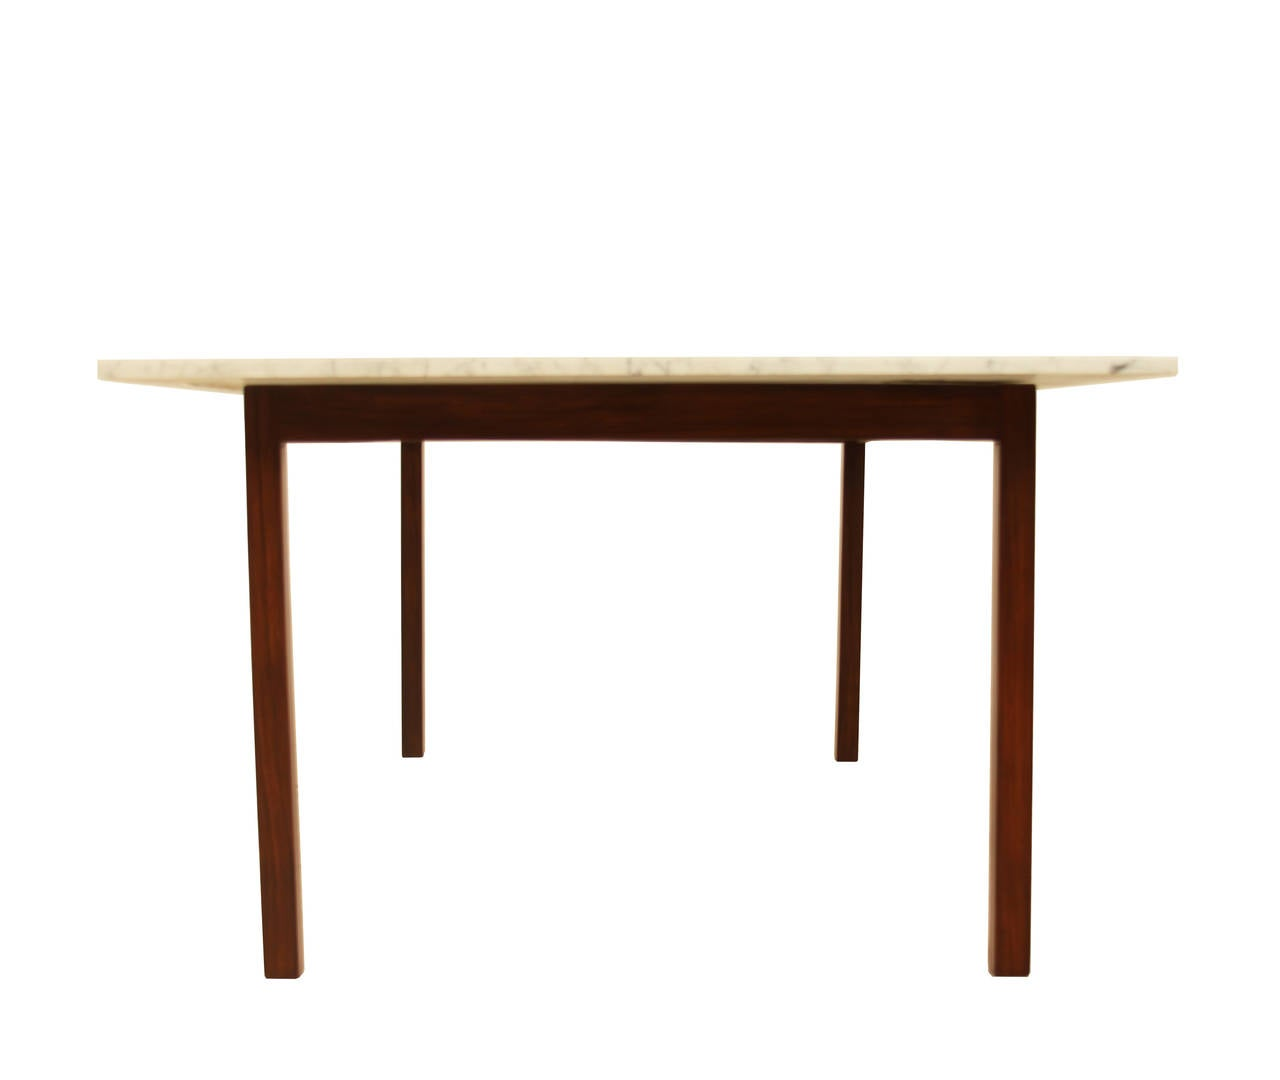 Brazilian Rosewood Dining Table With Carrara Marble Top For Sale At 1stdibs